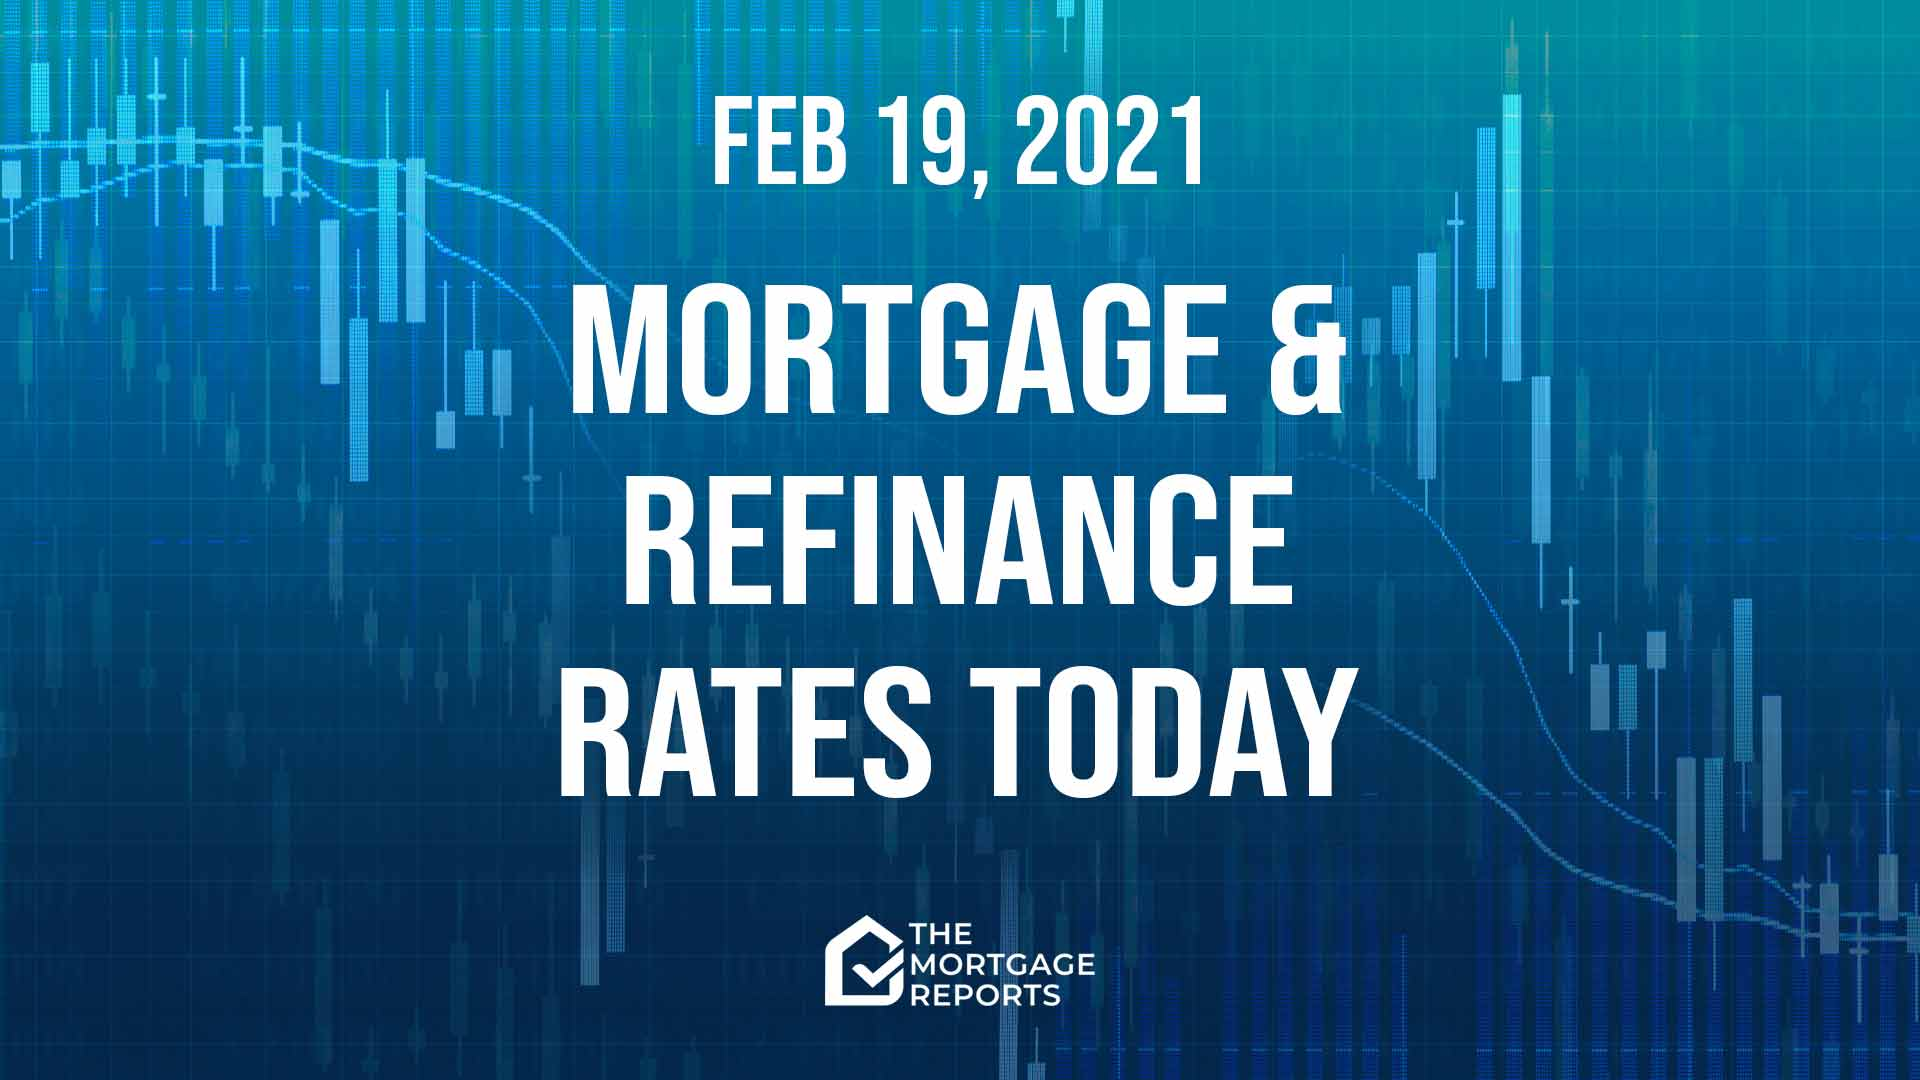 Mortgage and refinance rates today, February 19, 2021